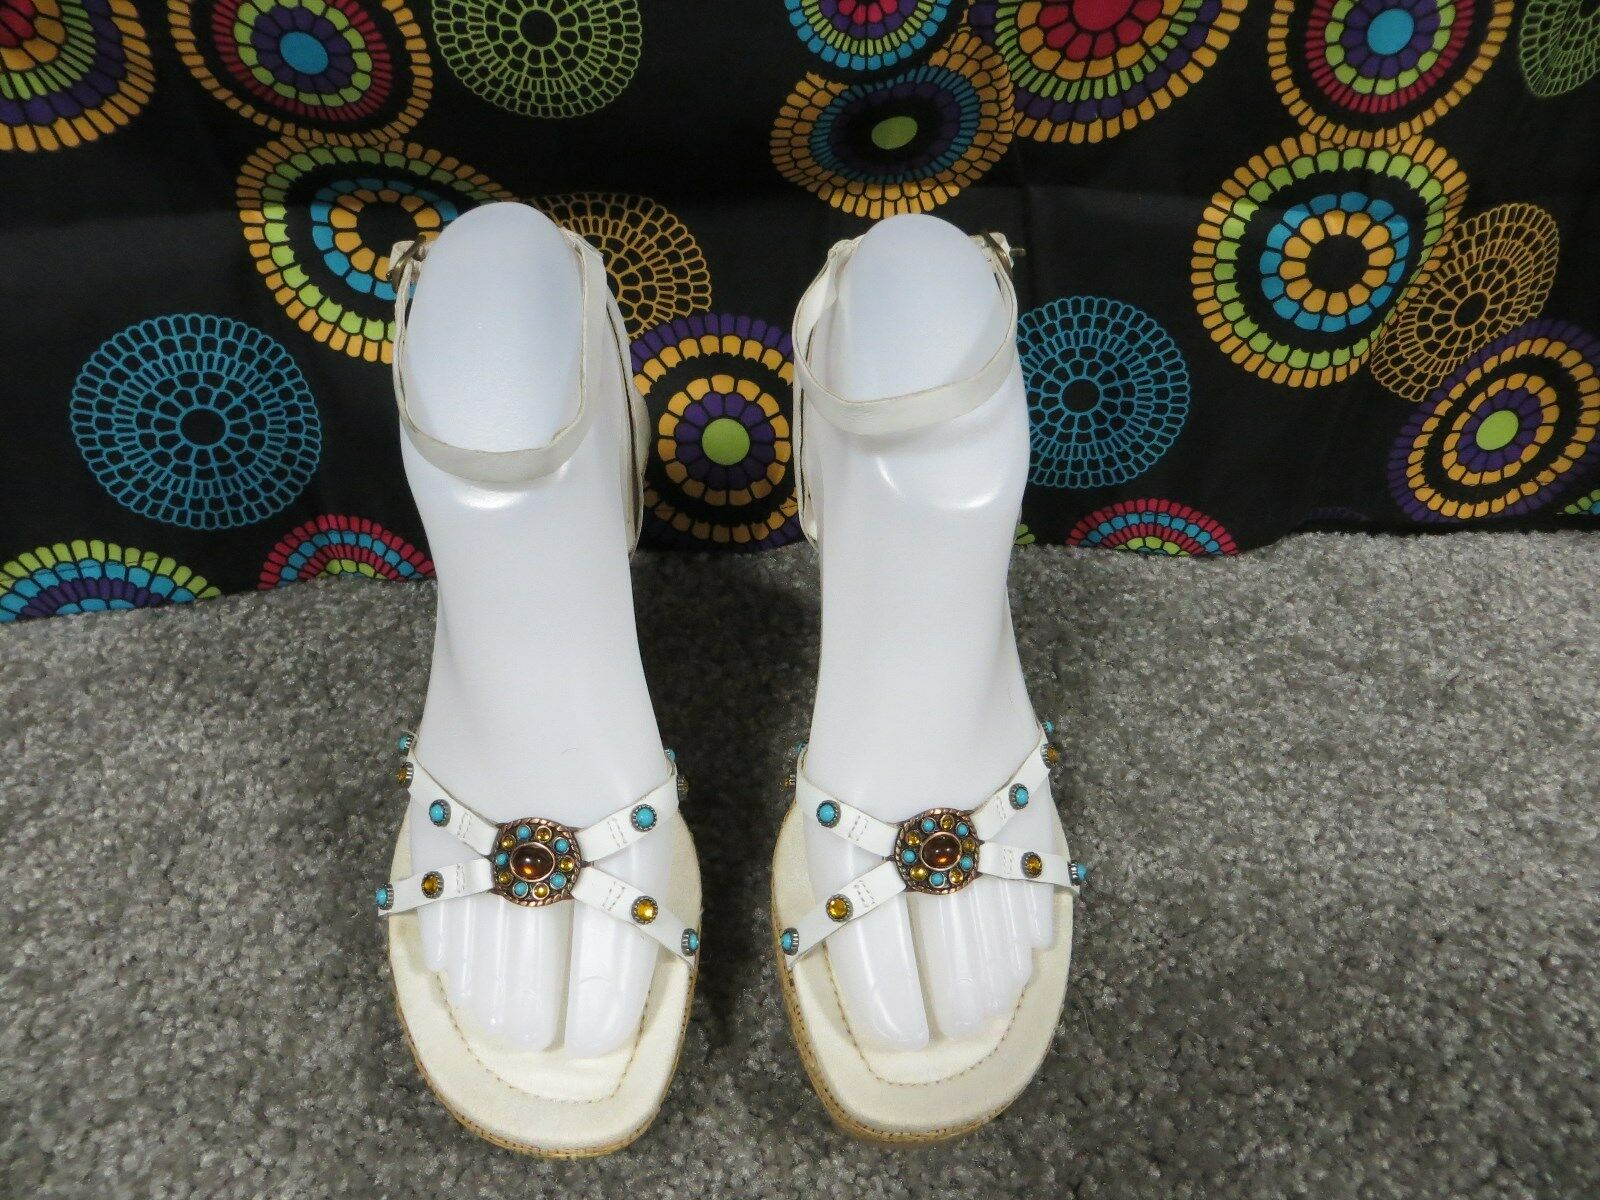 Mix It White Fashion Open Sandals Toe Woven Design Wedge Sandals Open w/Jewel Accents, 7-7.5 aaae1e